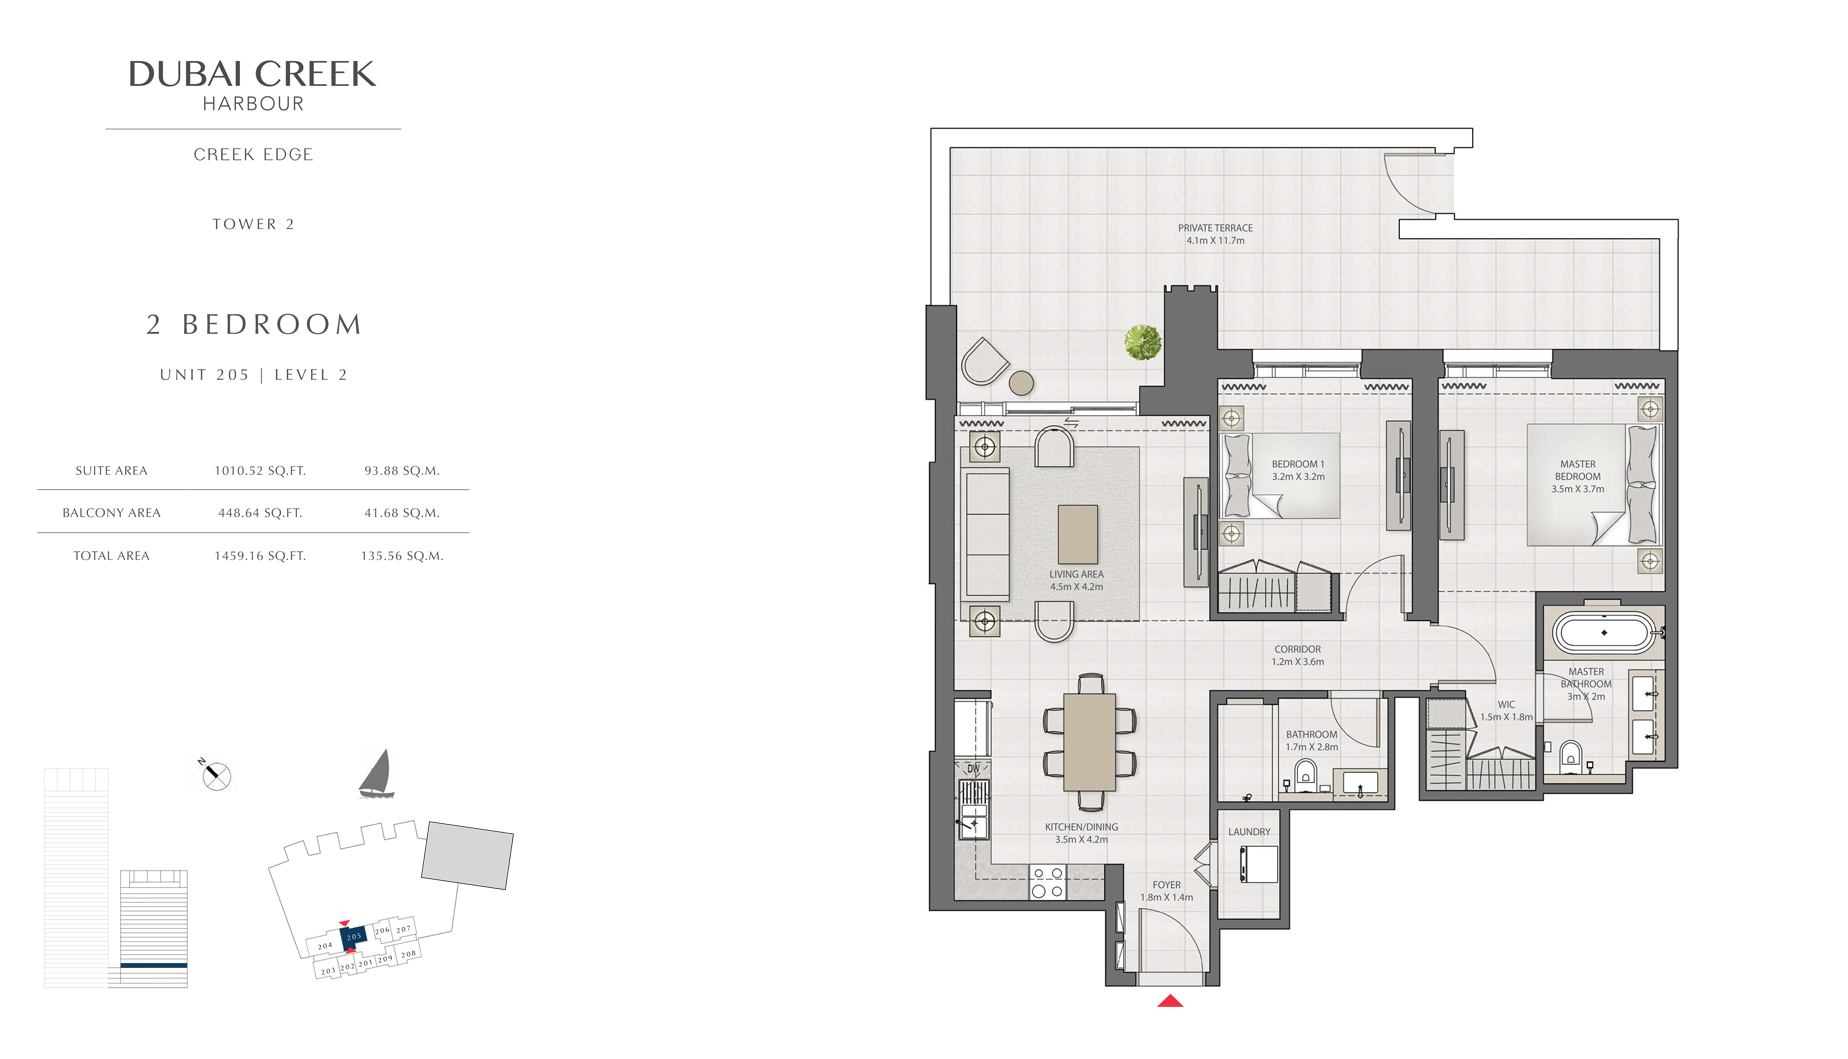 2 Bedroom Tower 2 Unit 205 Level 2 Size 1459 sq.ft